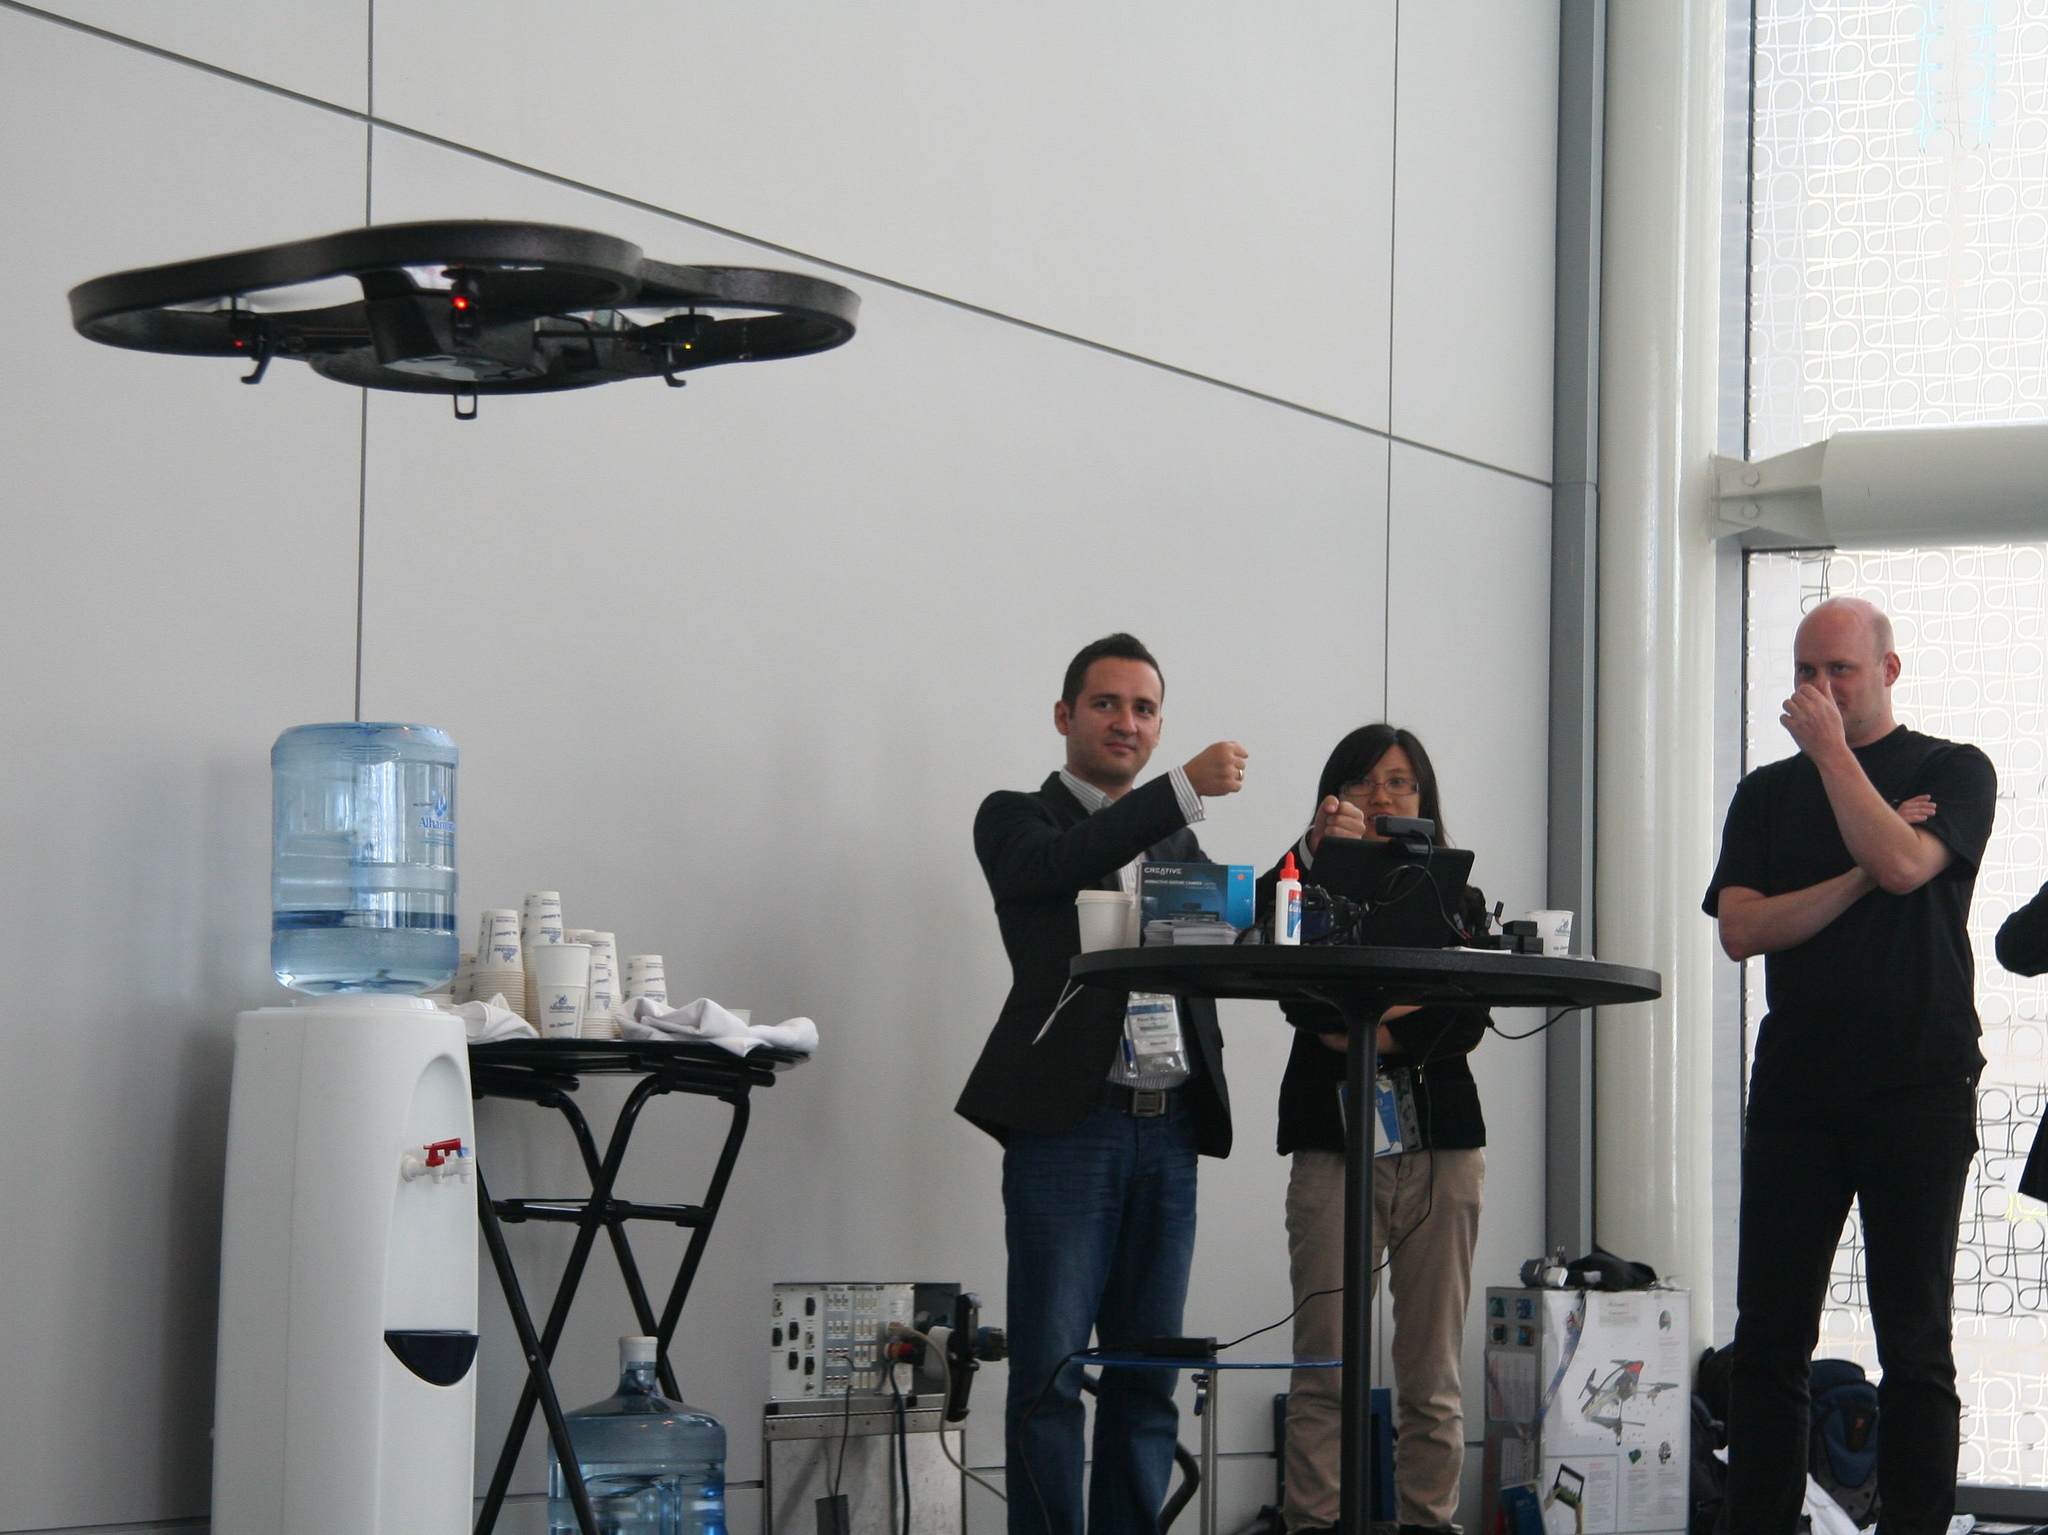 Intel Free Press, Drone controlled by perceptual computing September 17, 2013